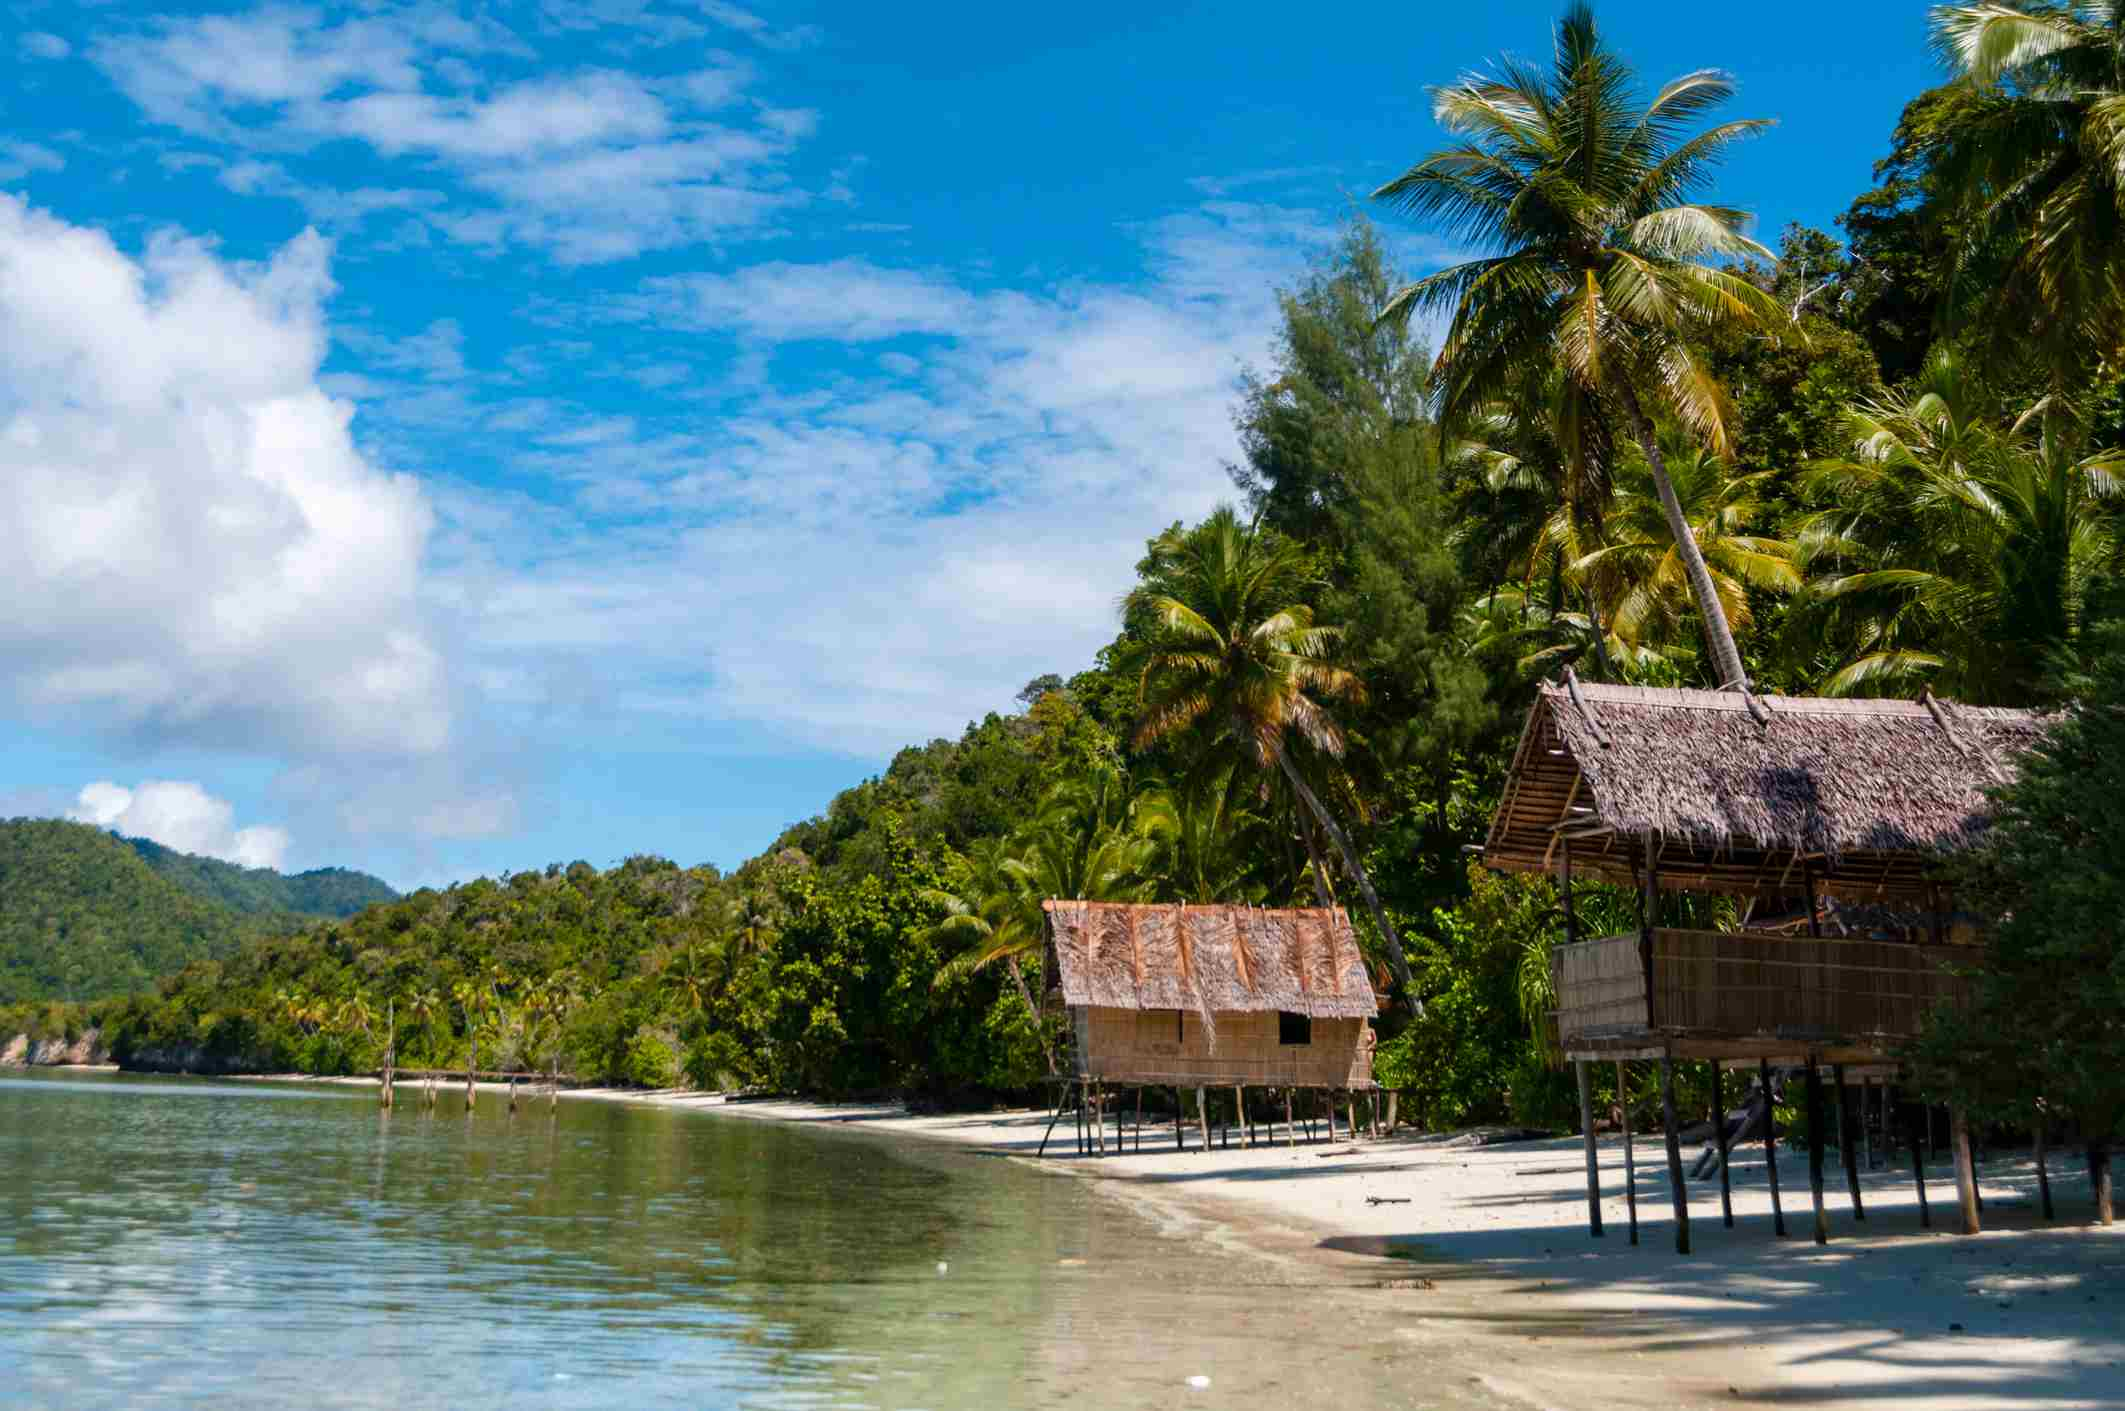 Nipa bamboo Huts at the White Sand beach with palm